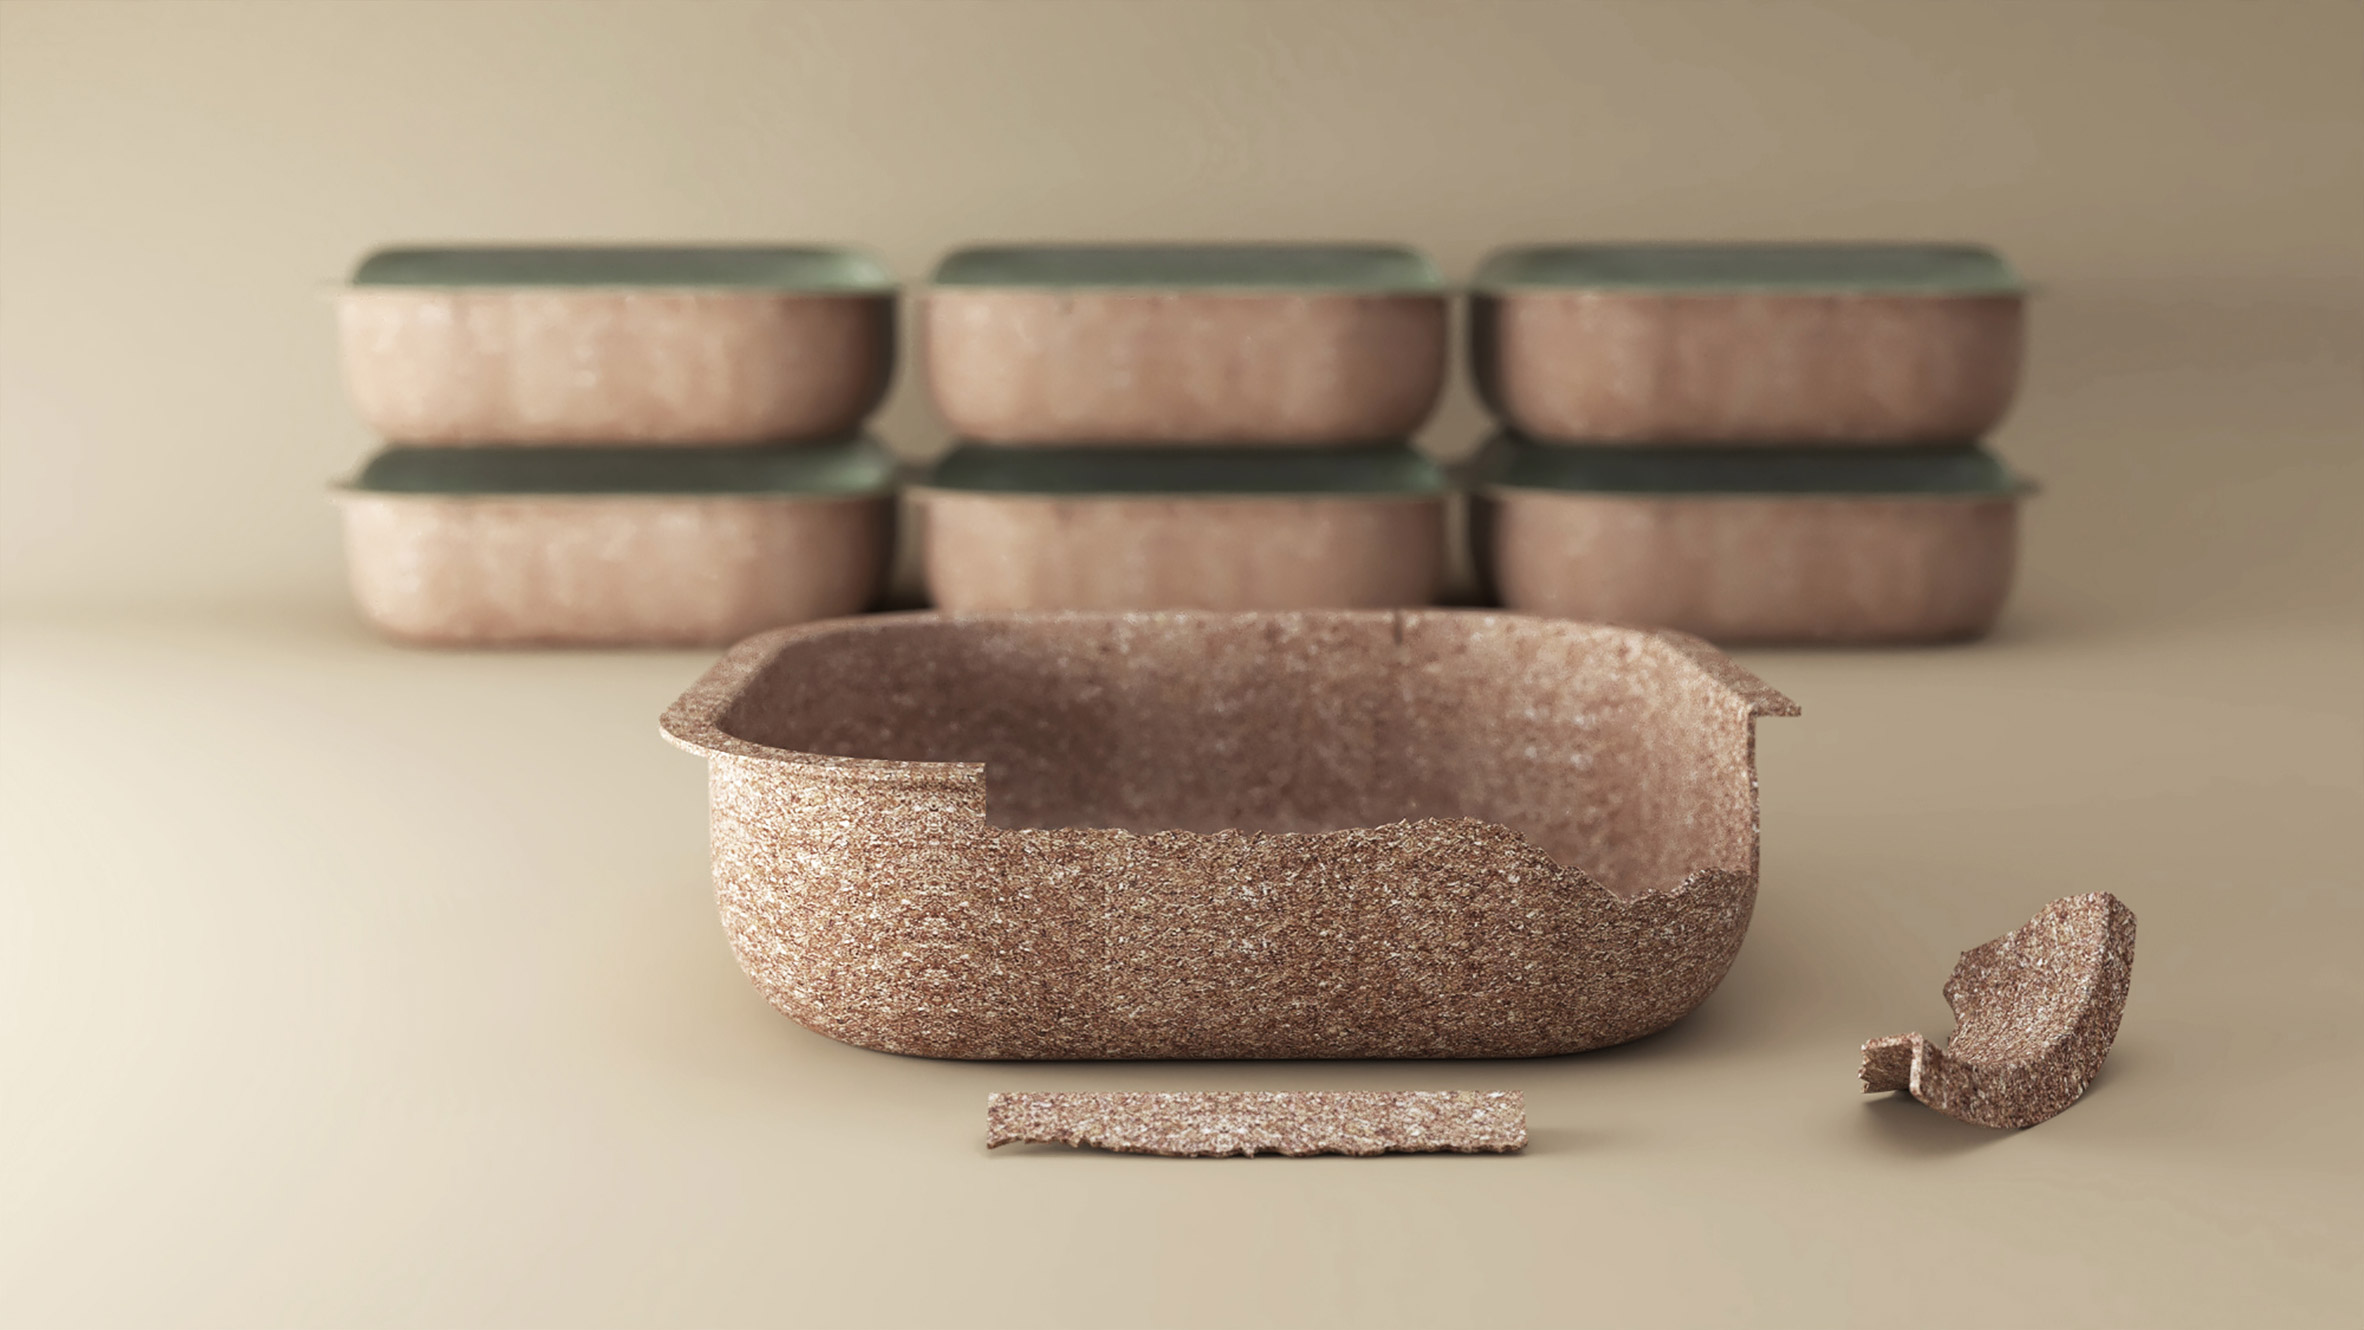 Multiple salad containers made from wheat husks